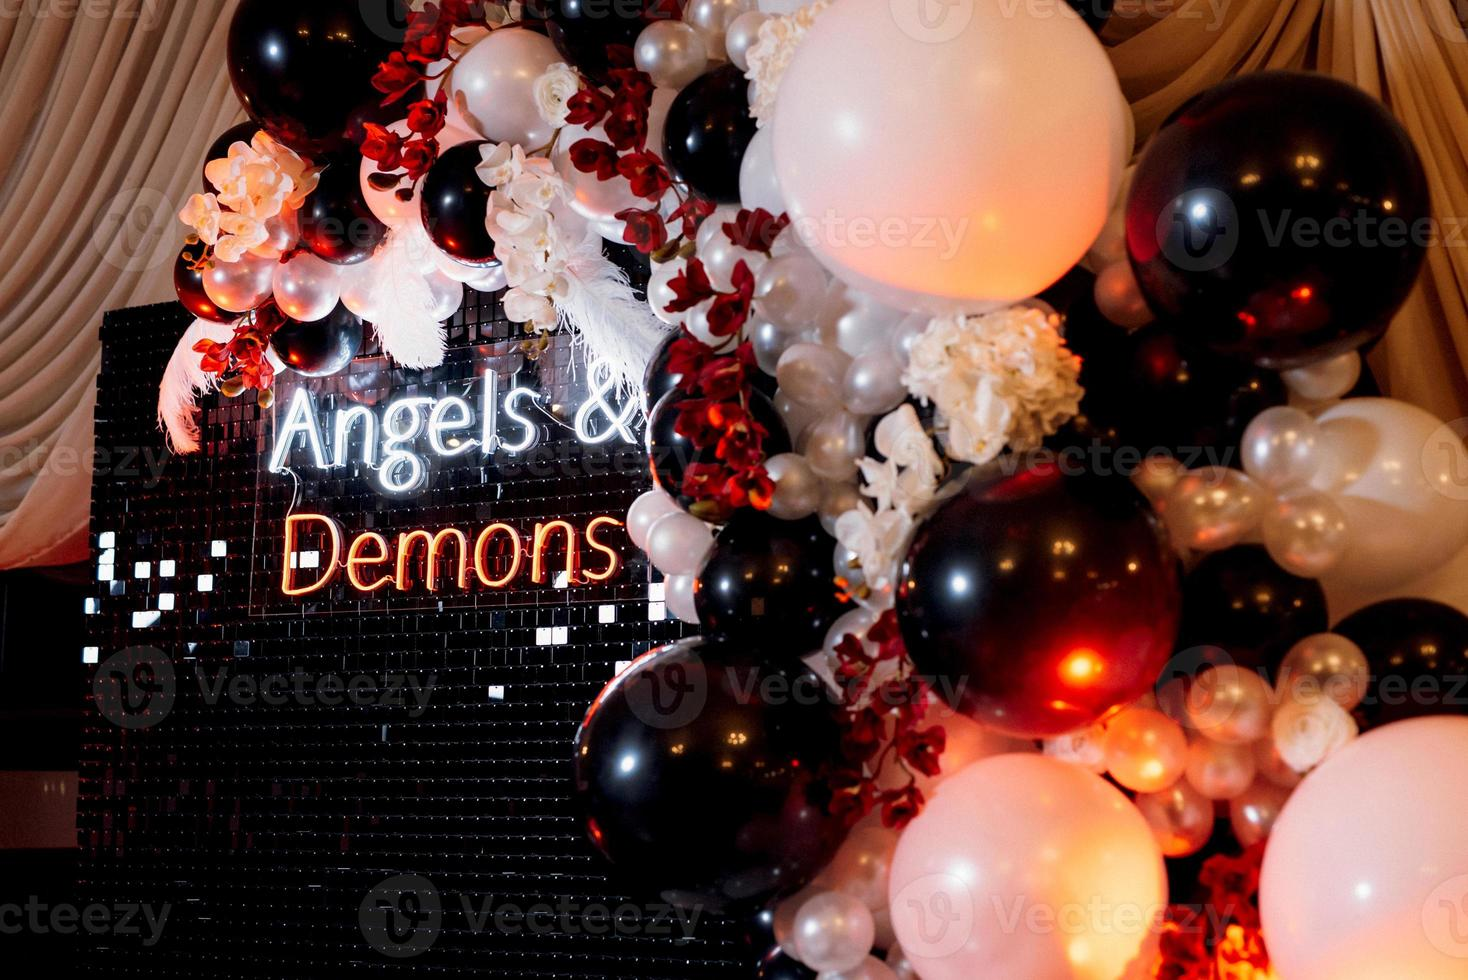 a photo zone themed angels and demons in black with white and black balls